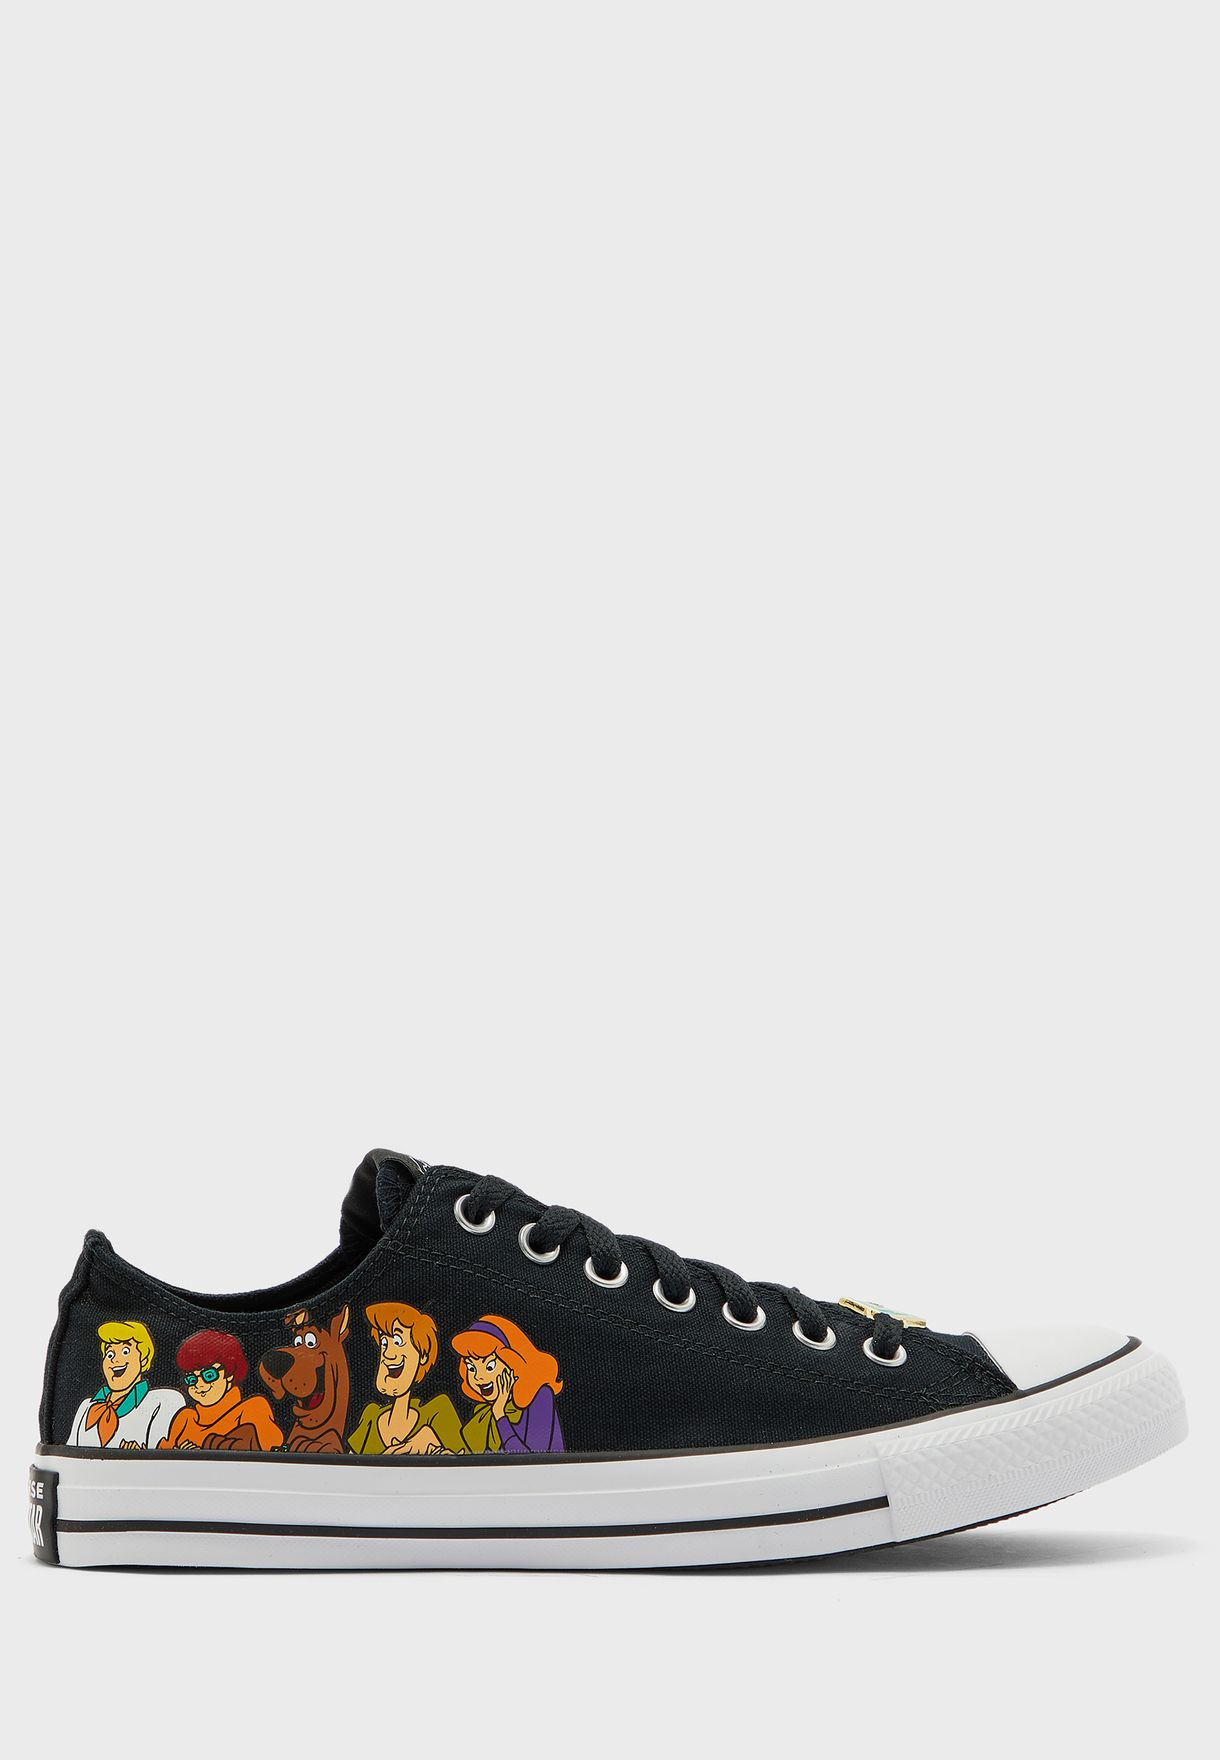 Scooby Doo Chuck Taylor All Star